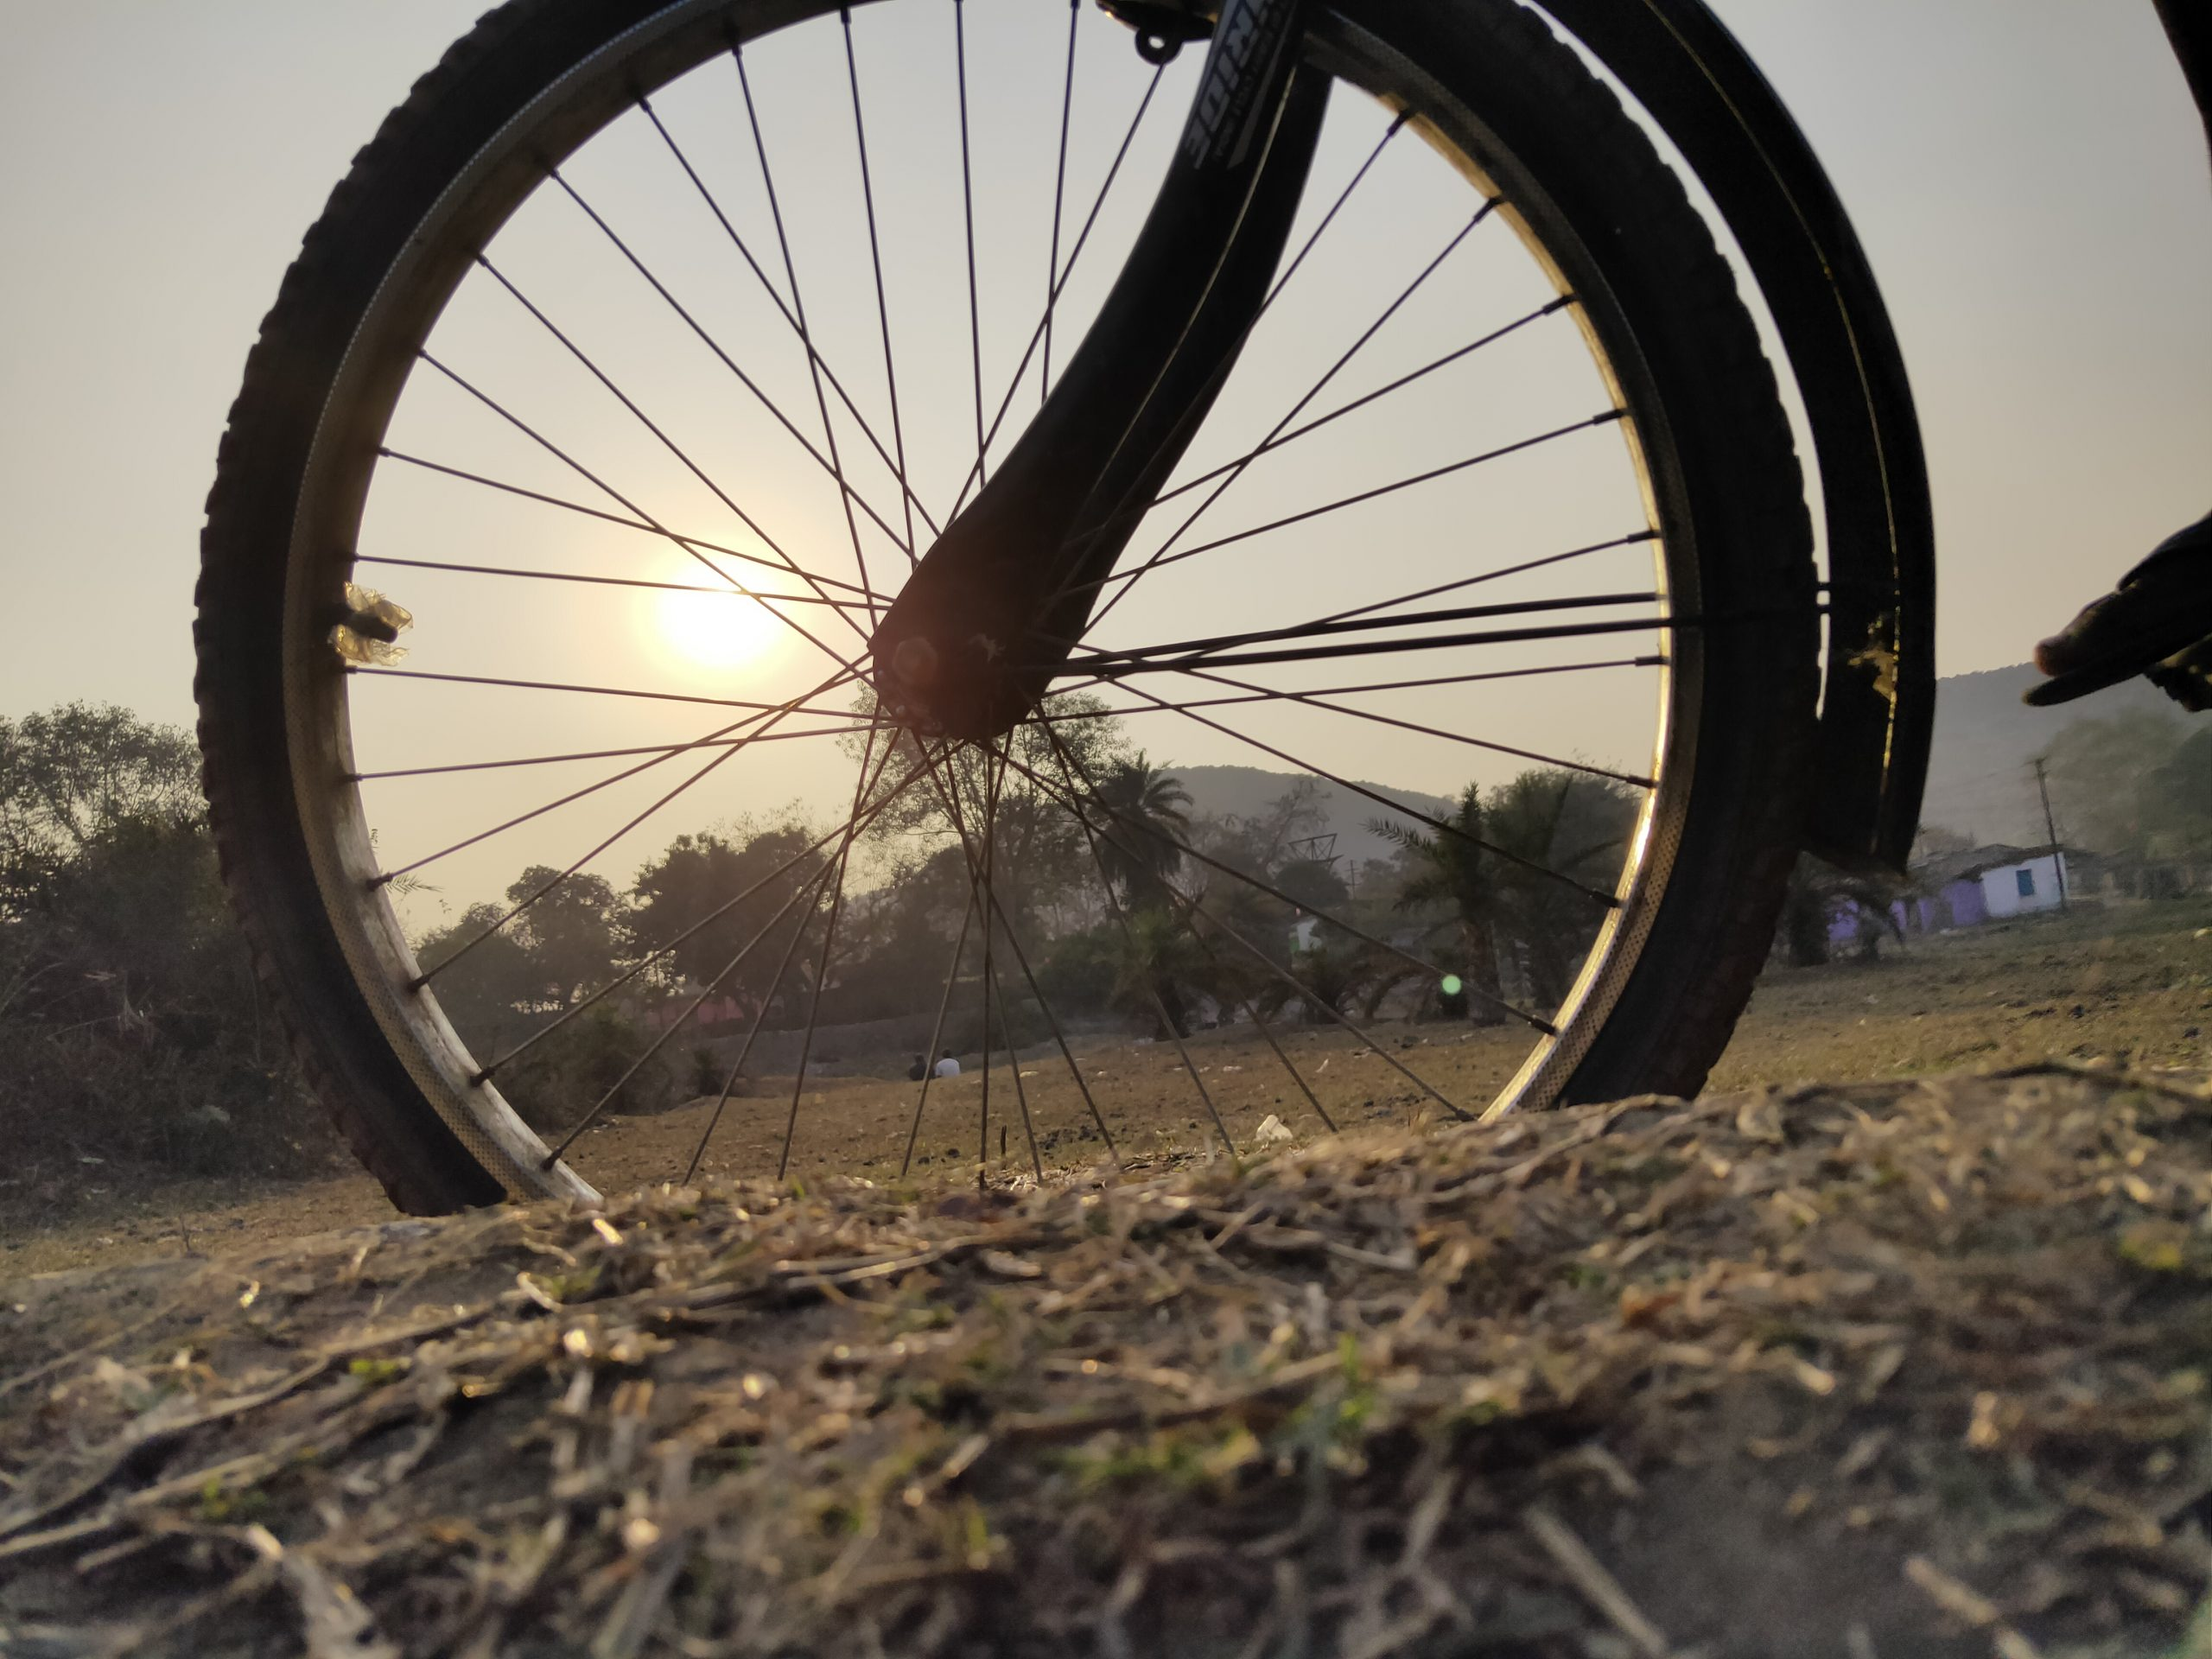 Sunlight through cycle wheel